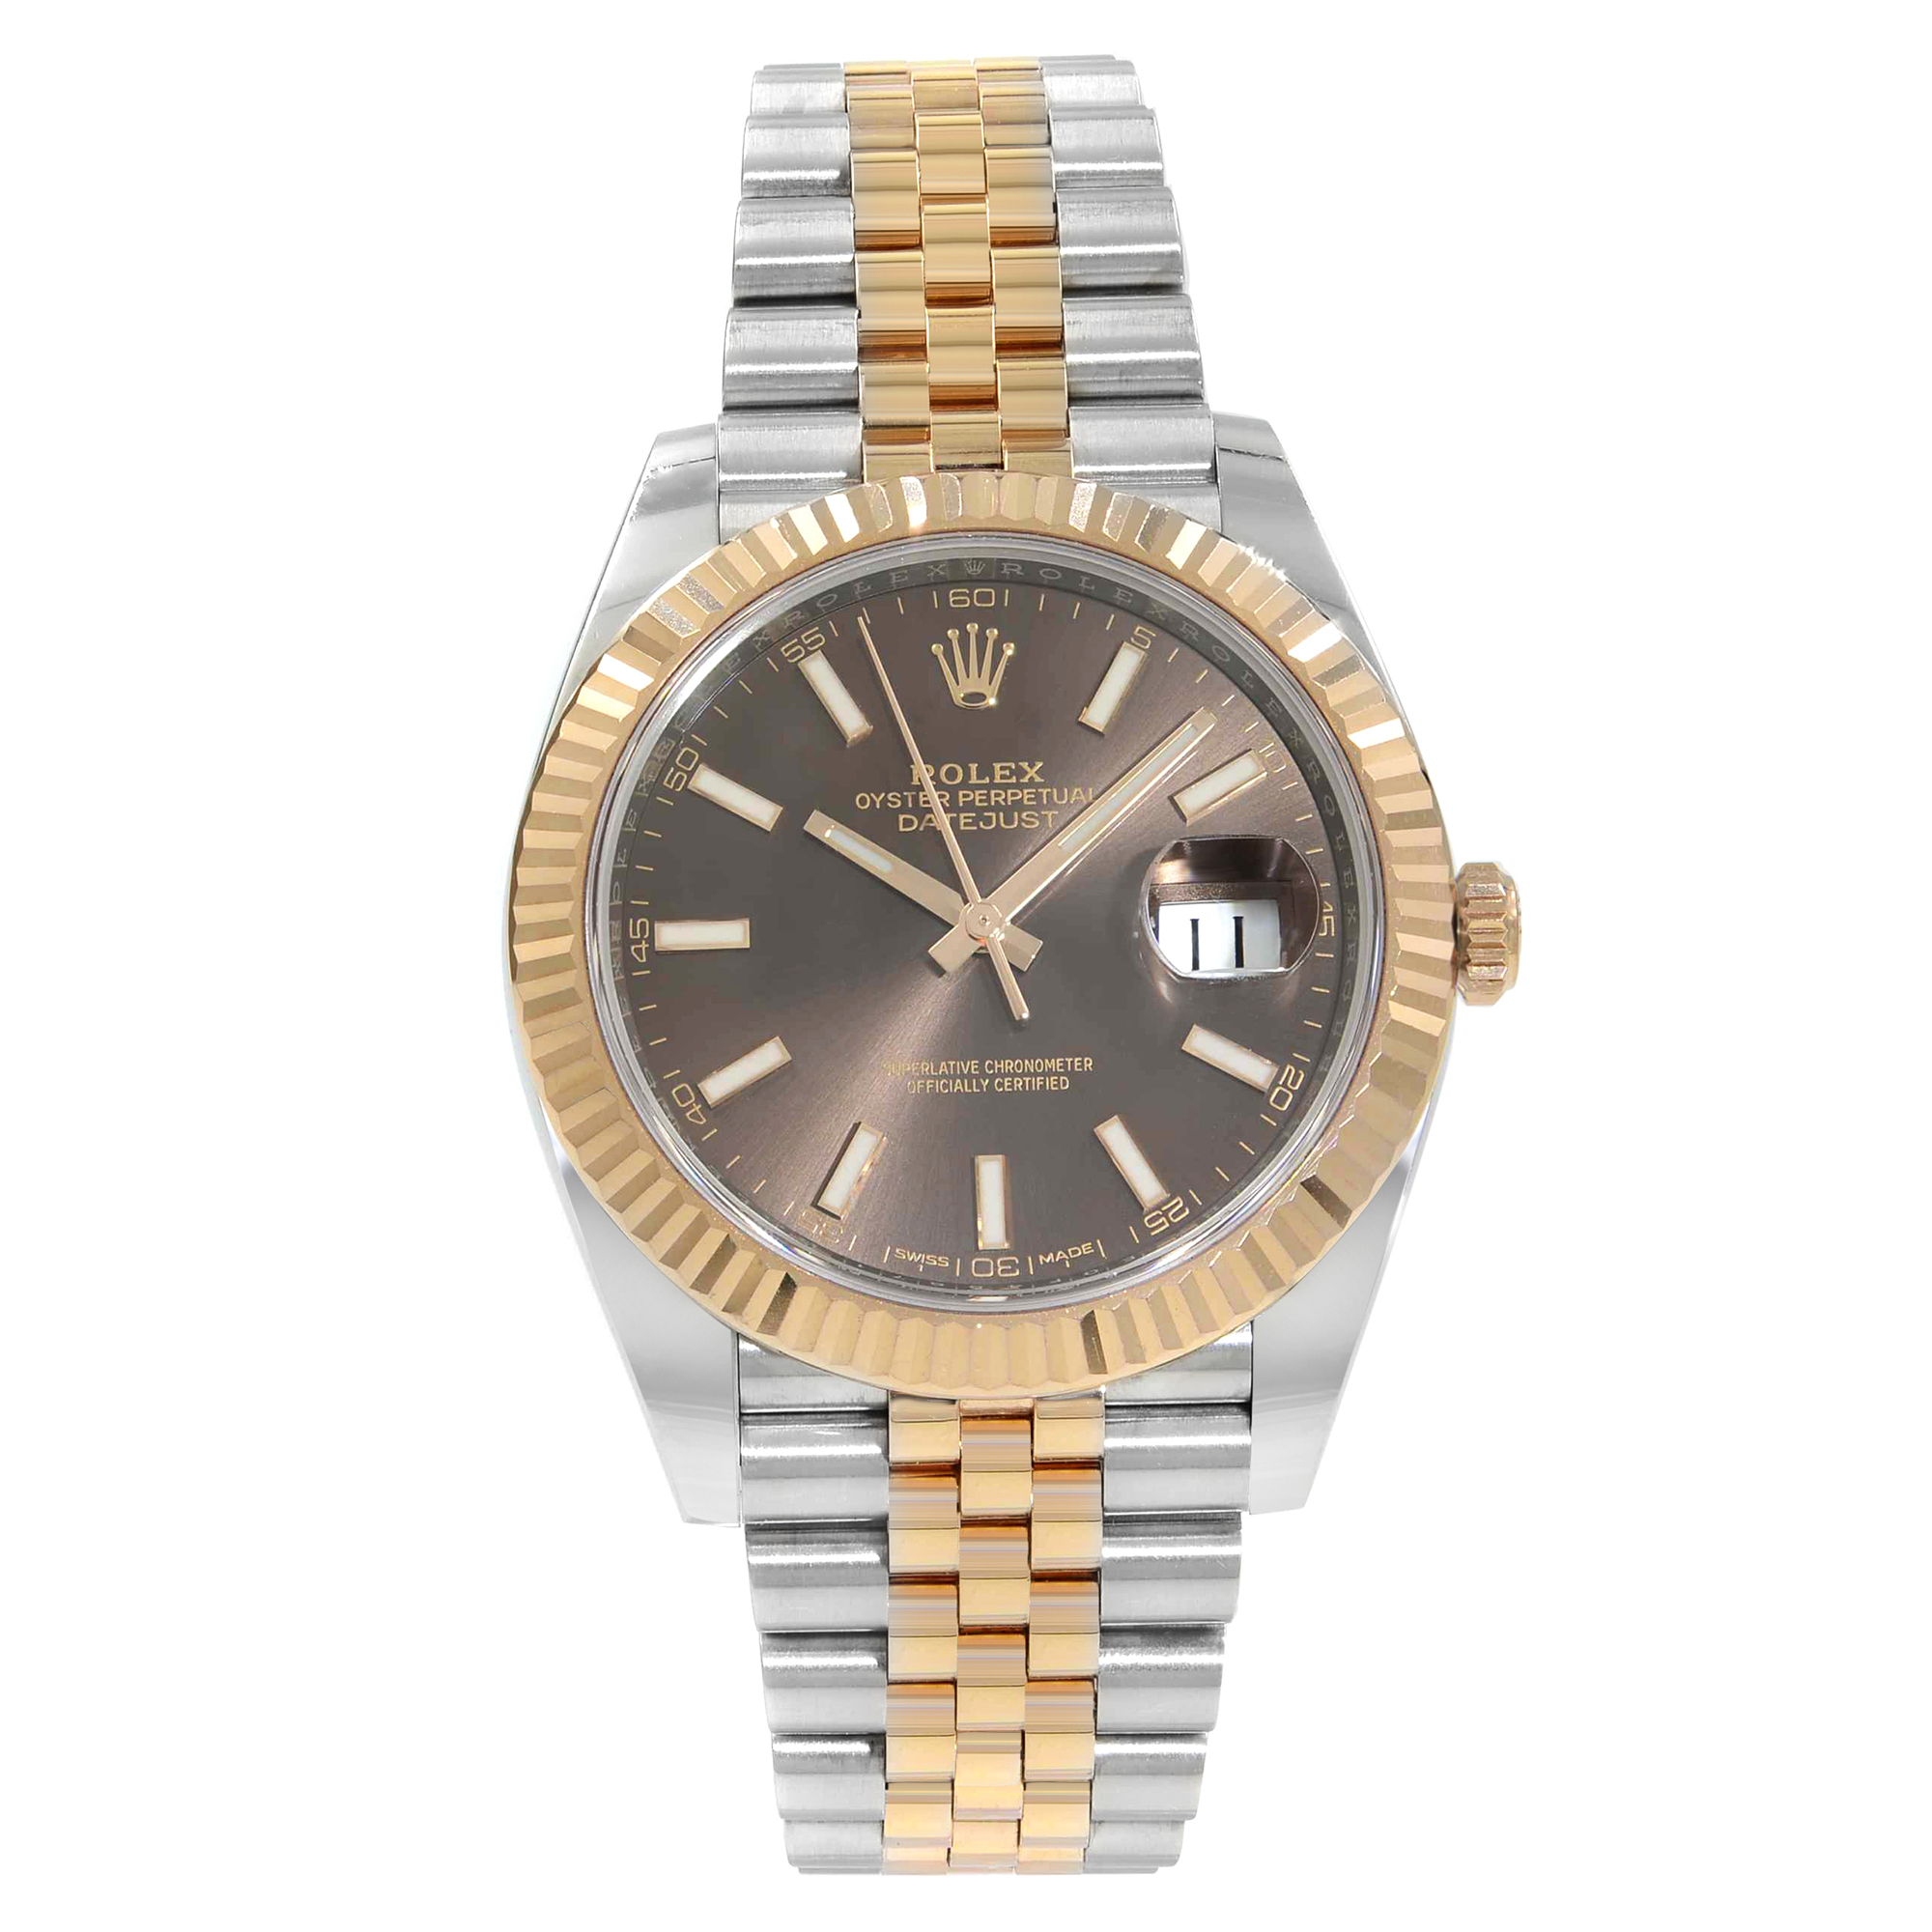 8cd1fec0e23a7 Details about Rolex Datejust 41 Steel 18K Rose Gold Chocolate Dial  Automatic Mens Watch 126331